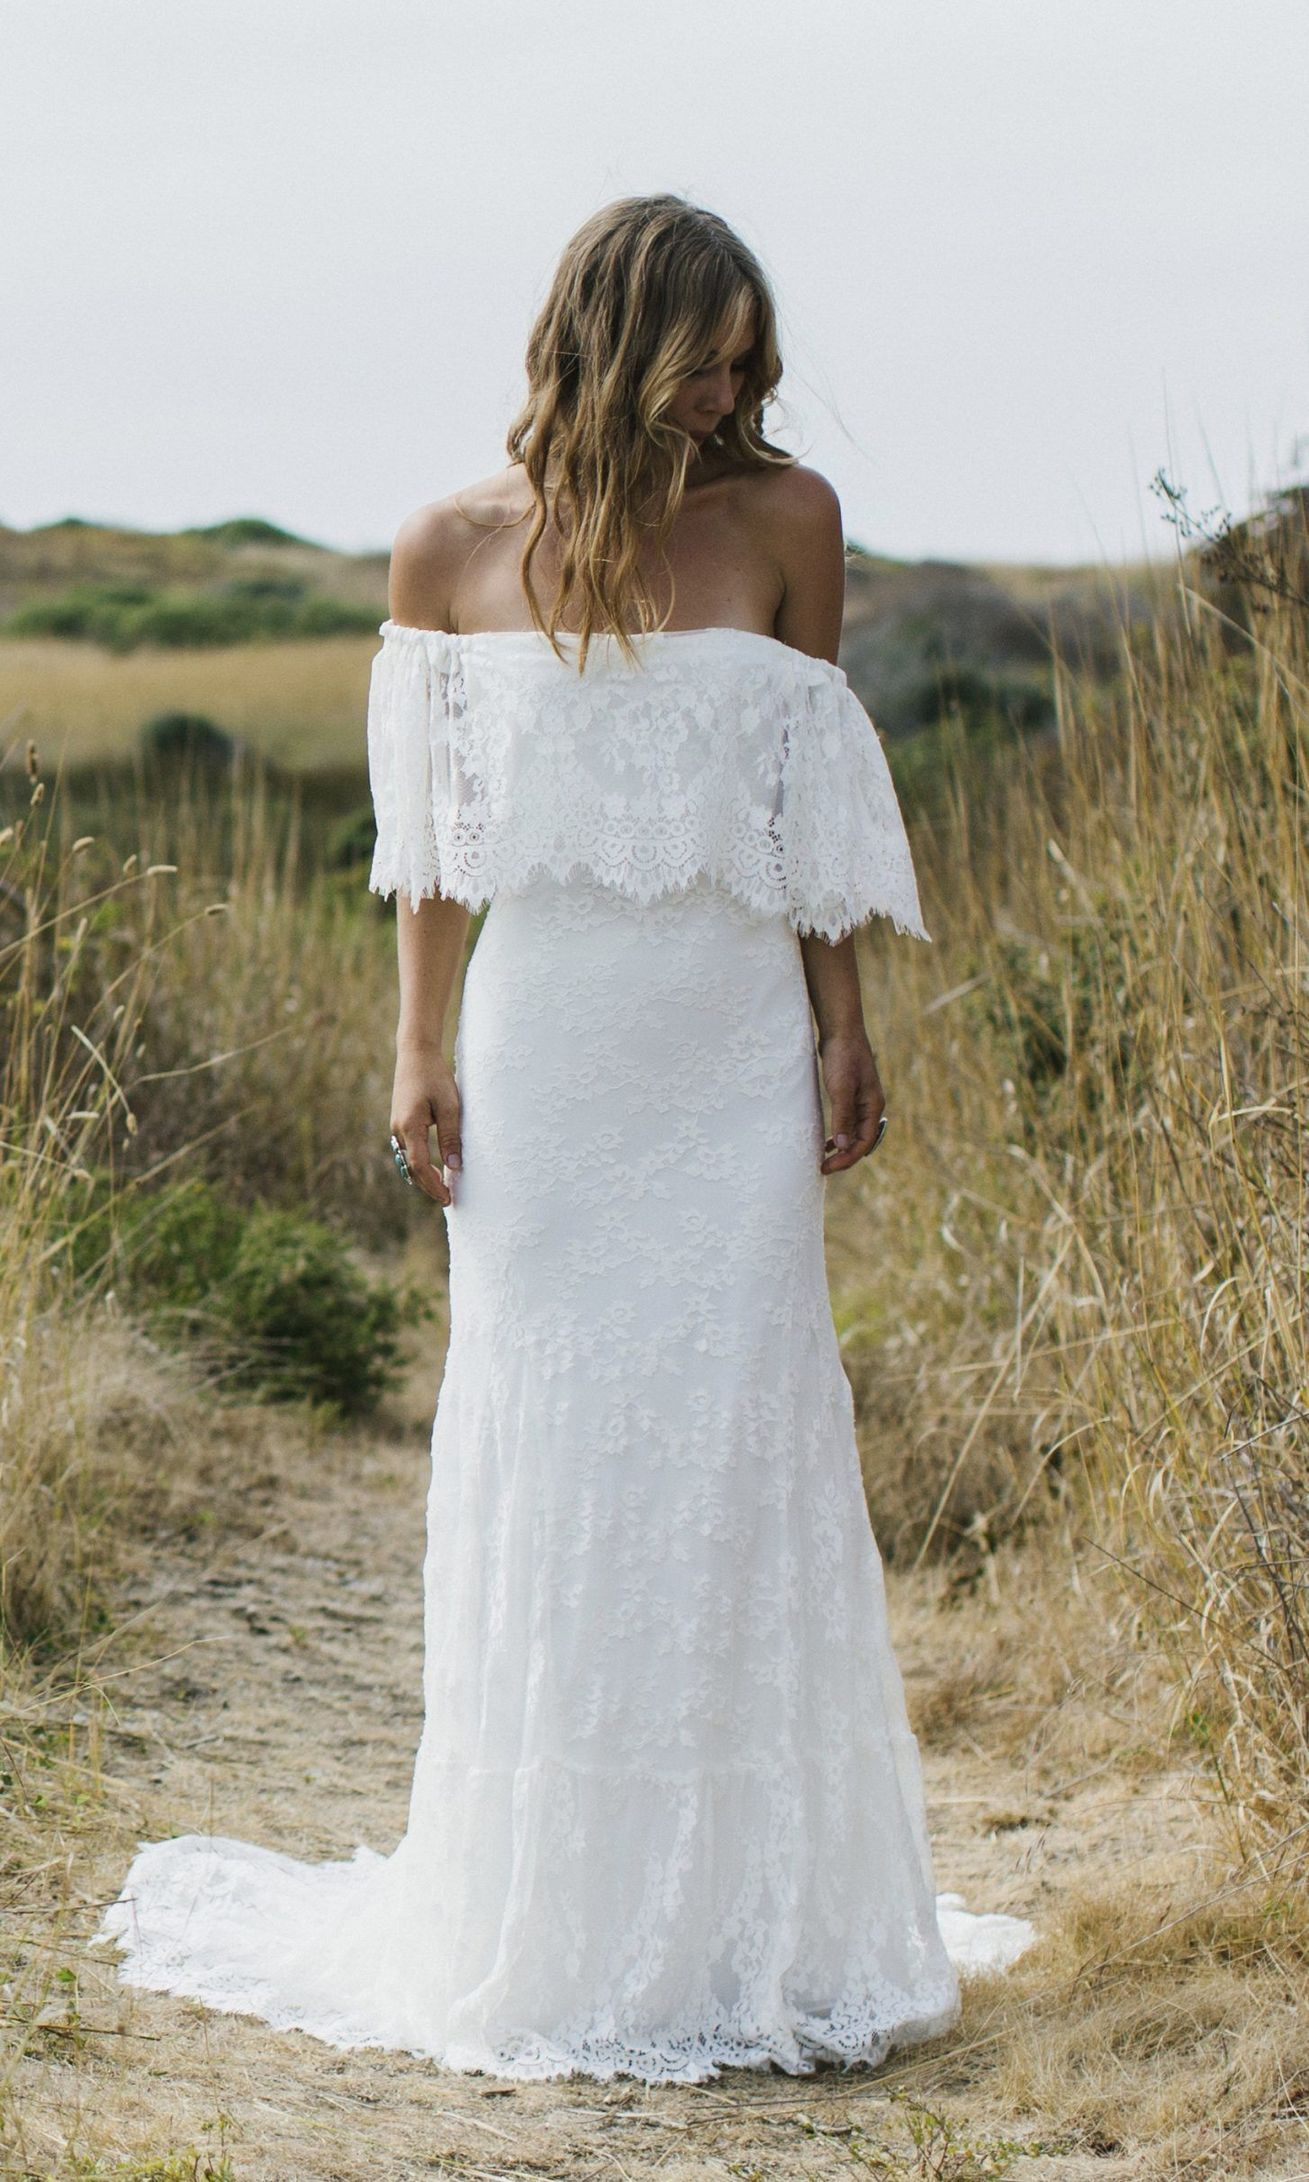 Top Boho Wedding Dress Ideas For You Top Boho Wedding Dress Ideas For You new photo